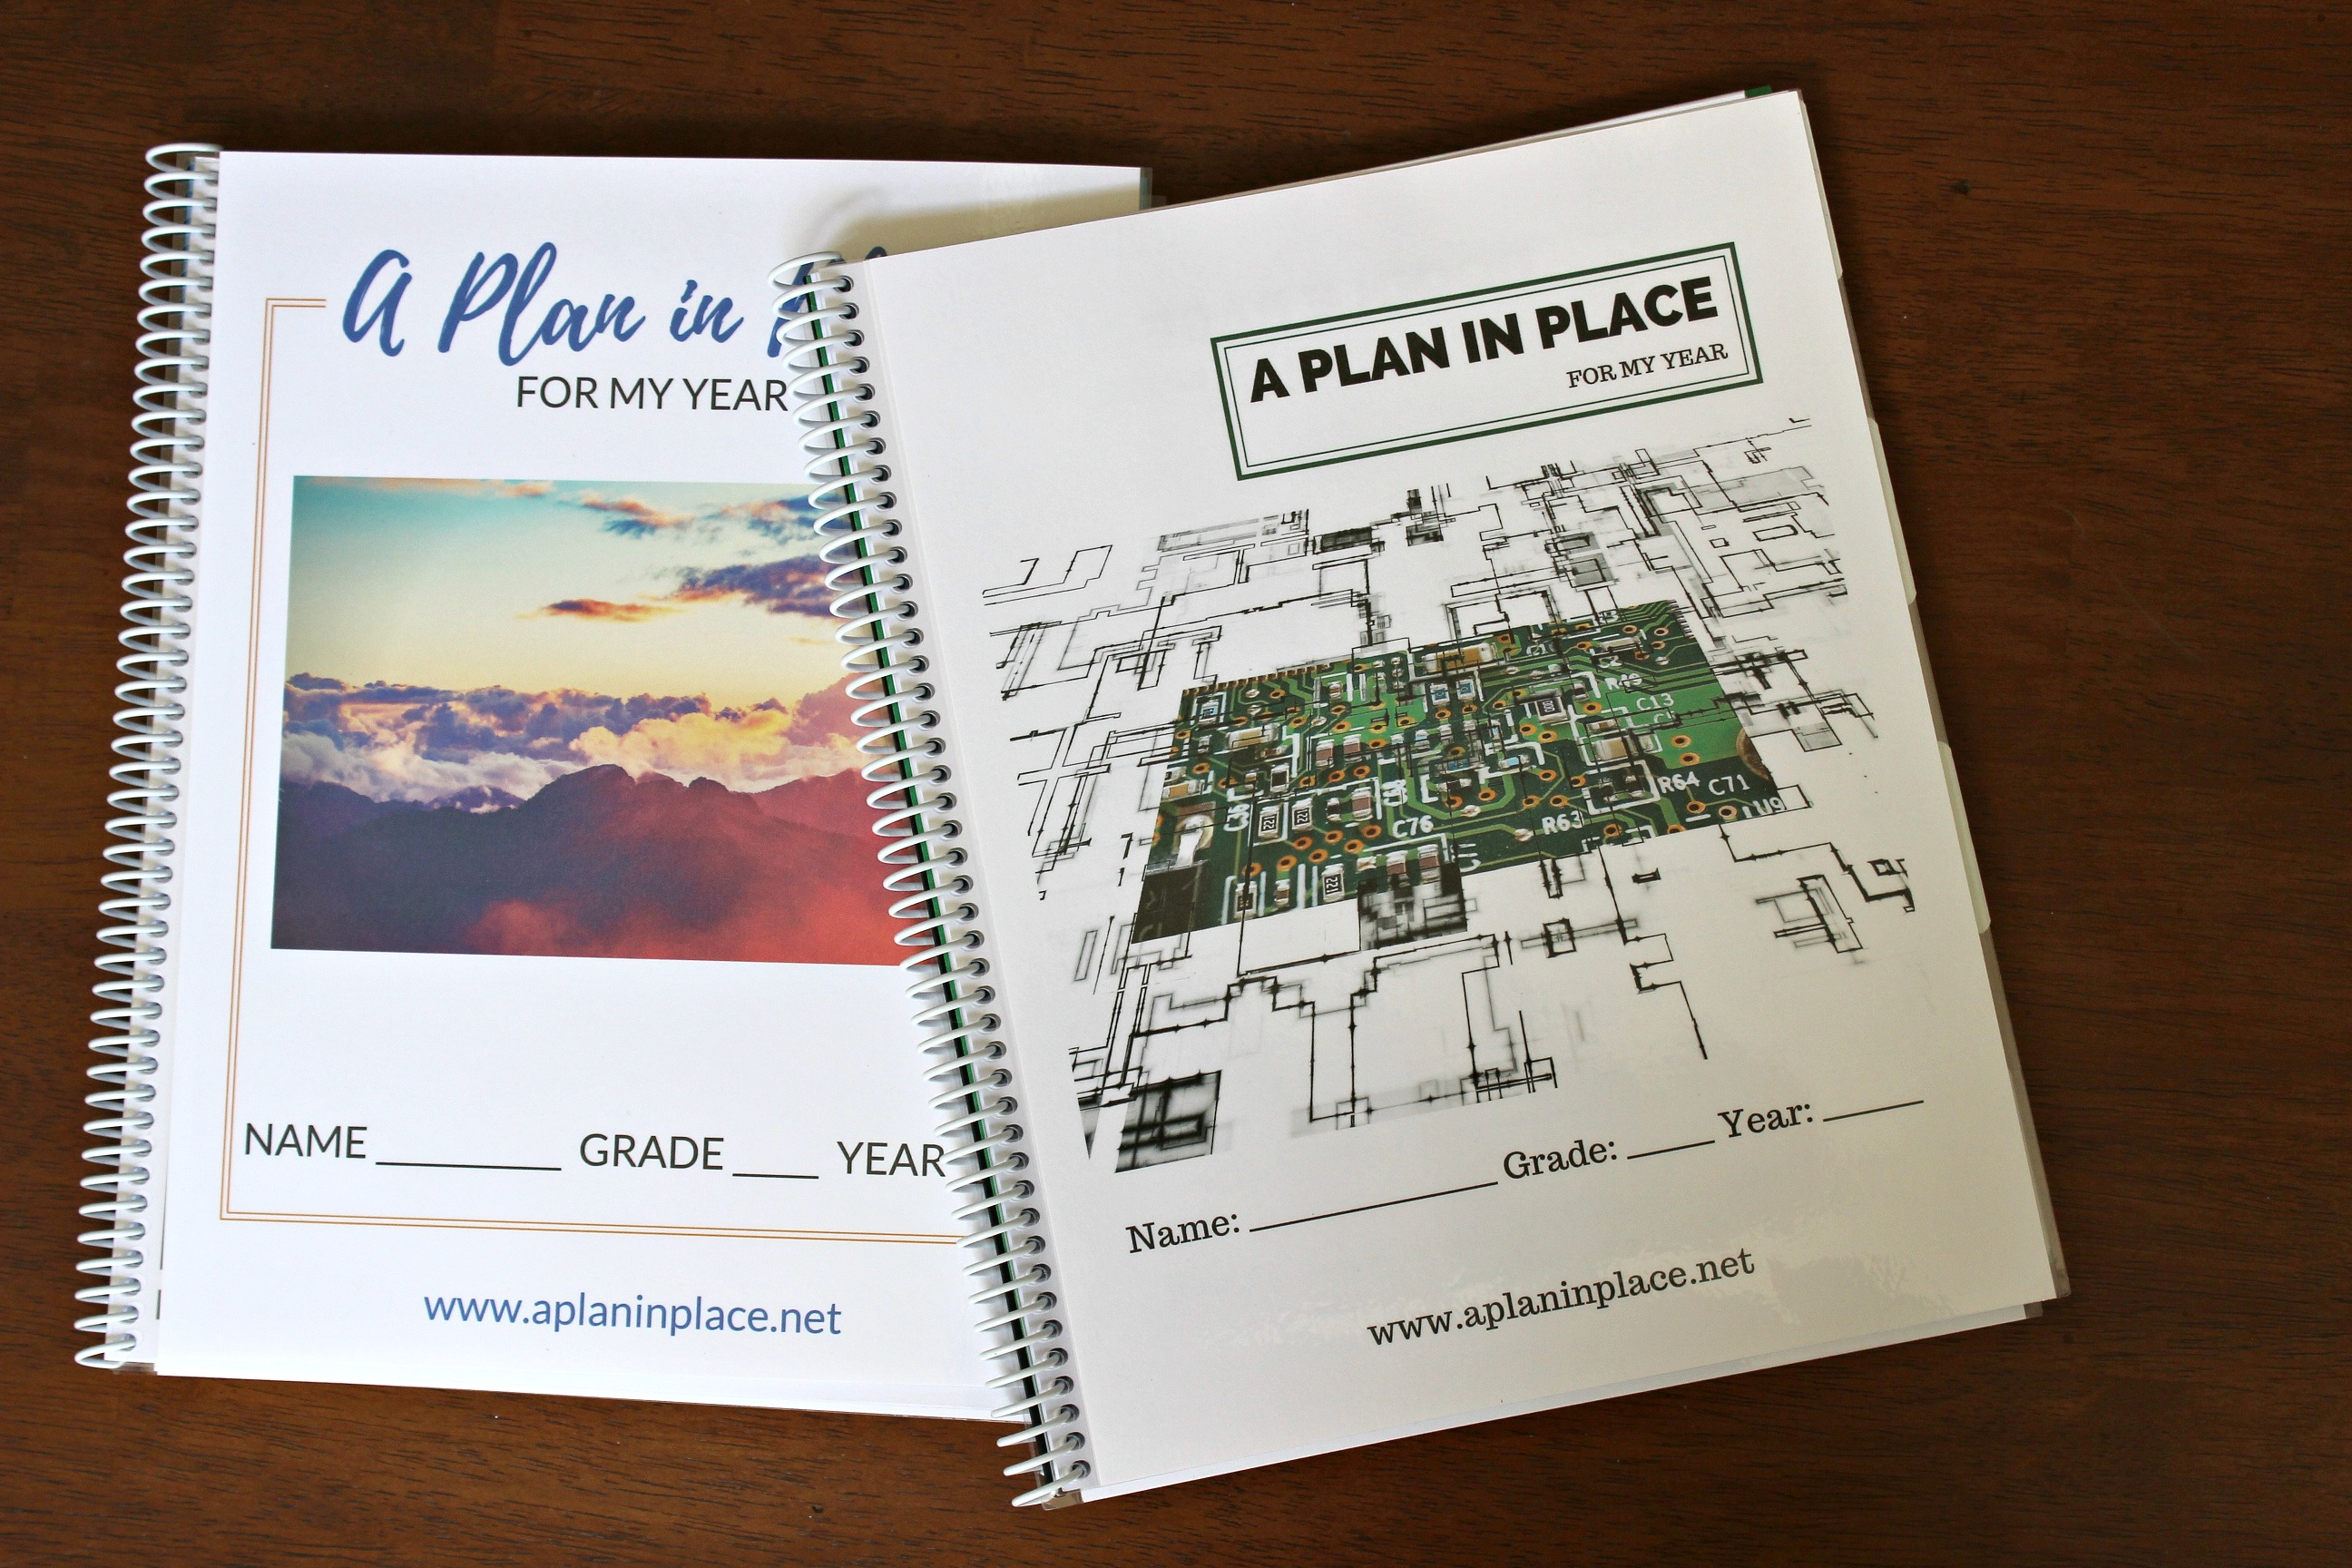 high school homeschool planner A Plan in Place